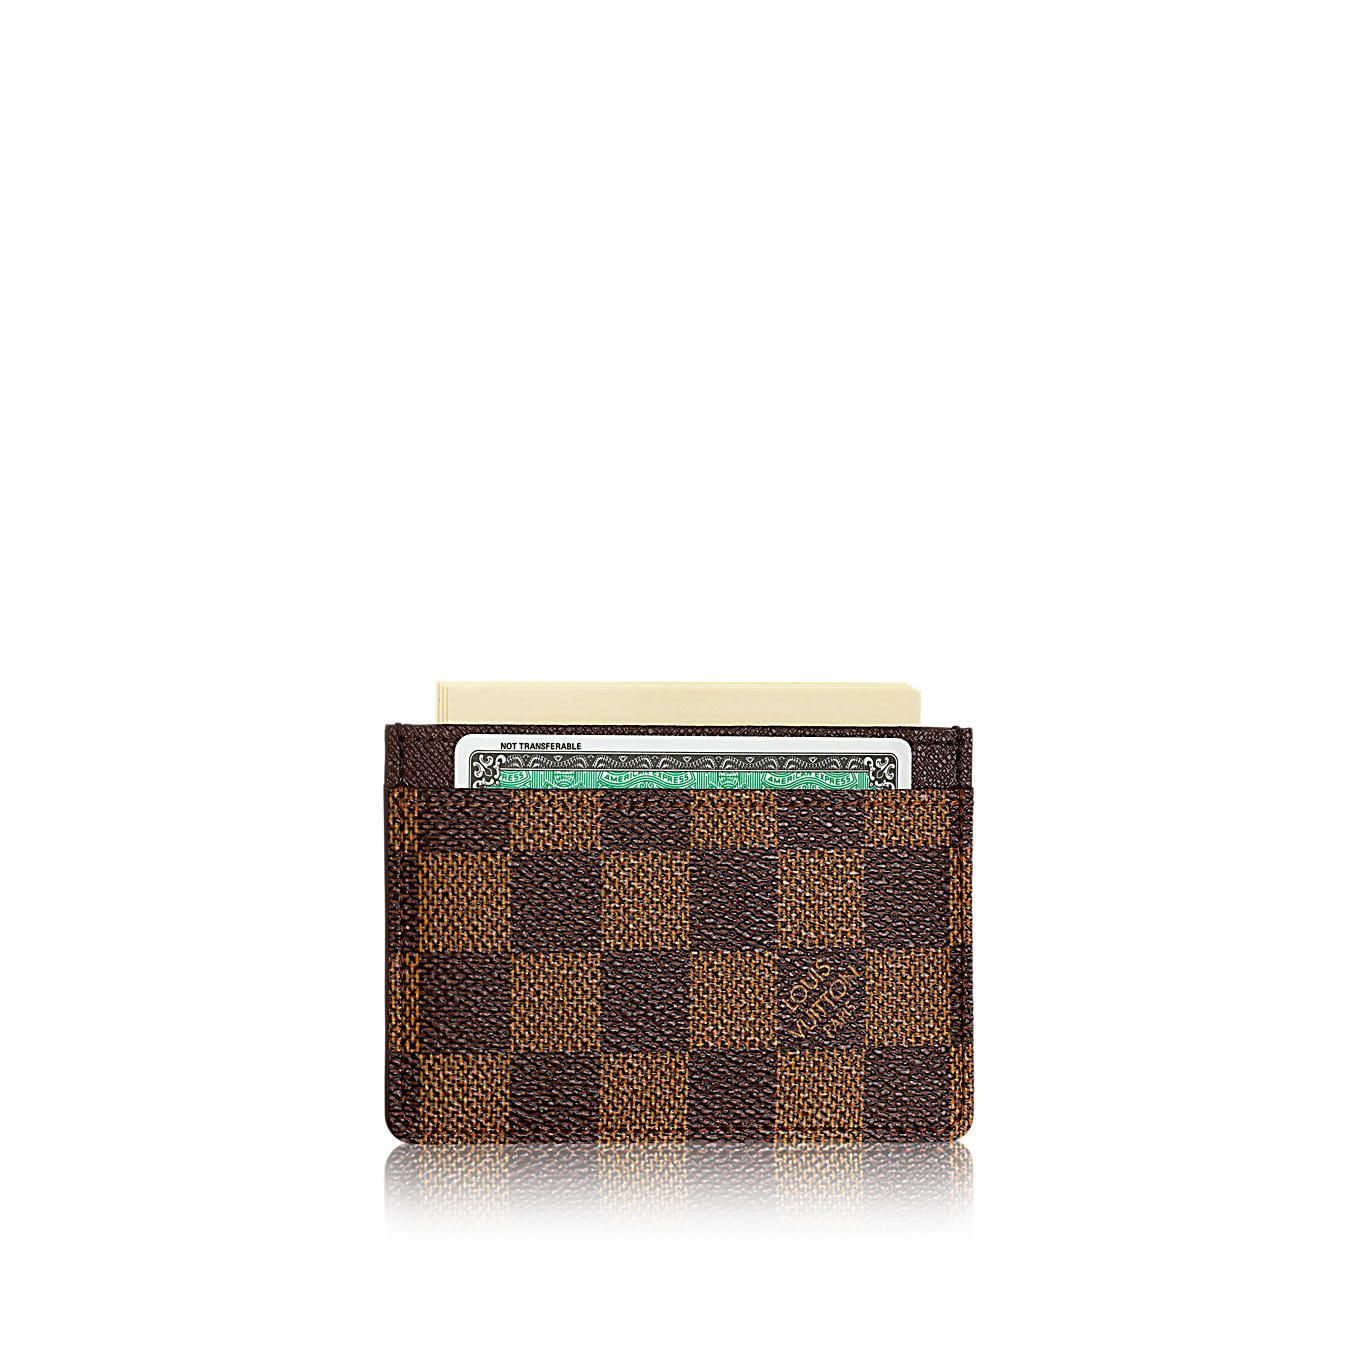 Card Holder Damier Ebene Canvas Men Small Leather Goods Key and Card ...